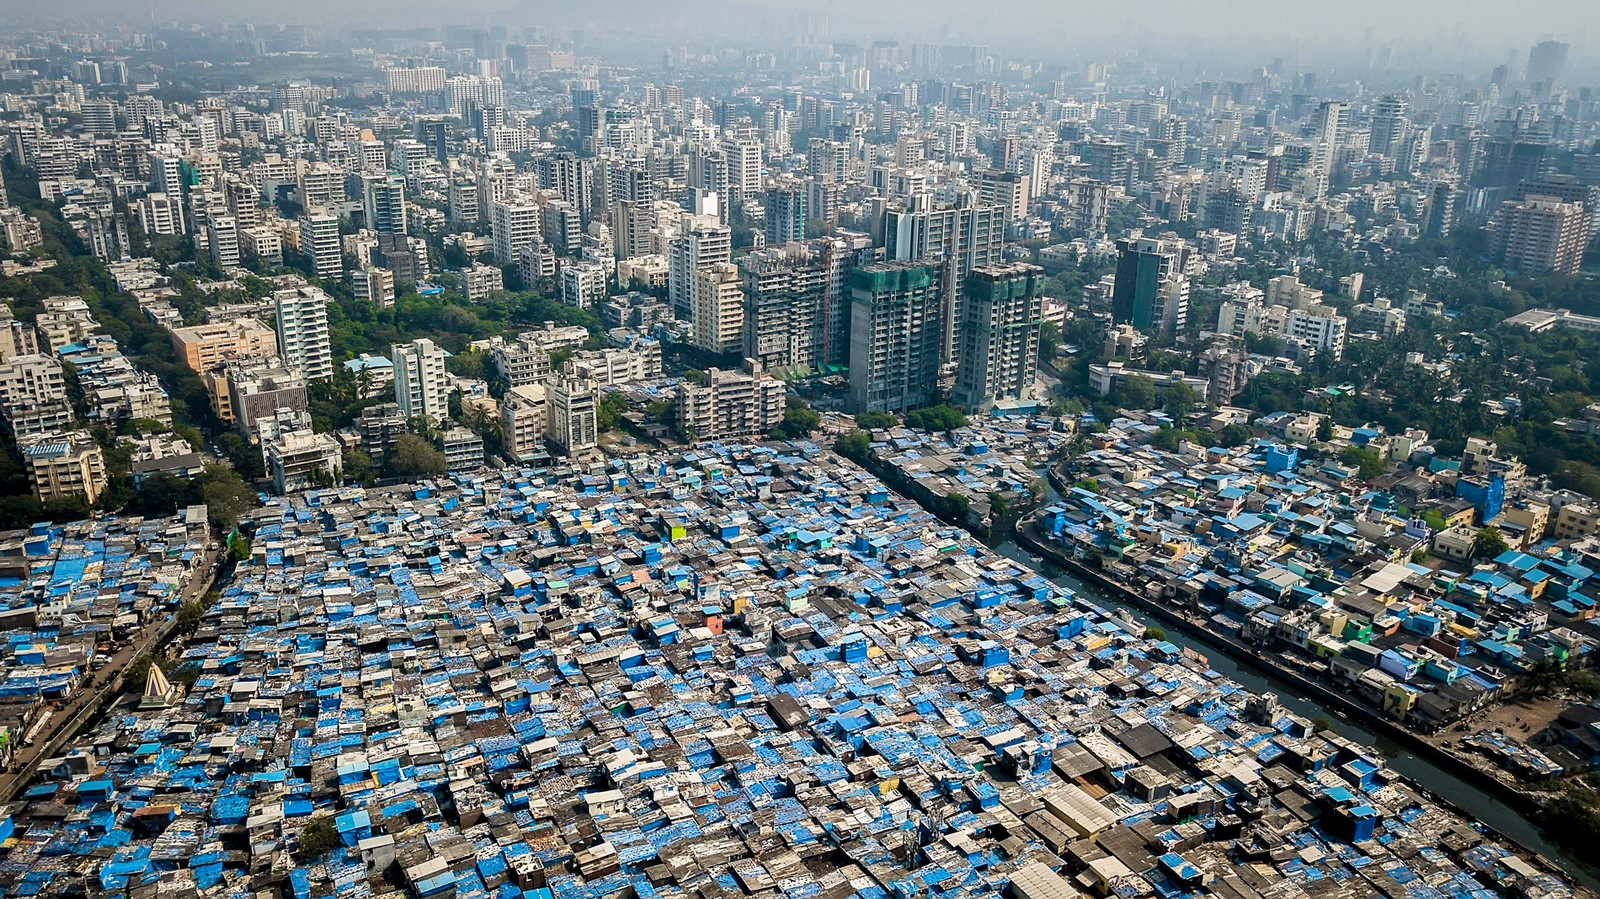 TedTalks for Architects: What if the poor were part of city planning? by Smruti Jukur Johari - Sheet2